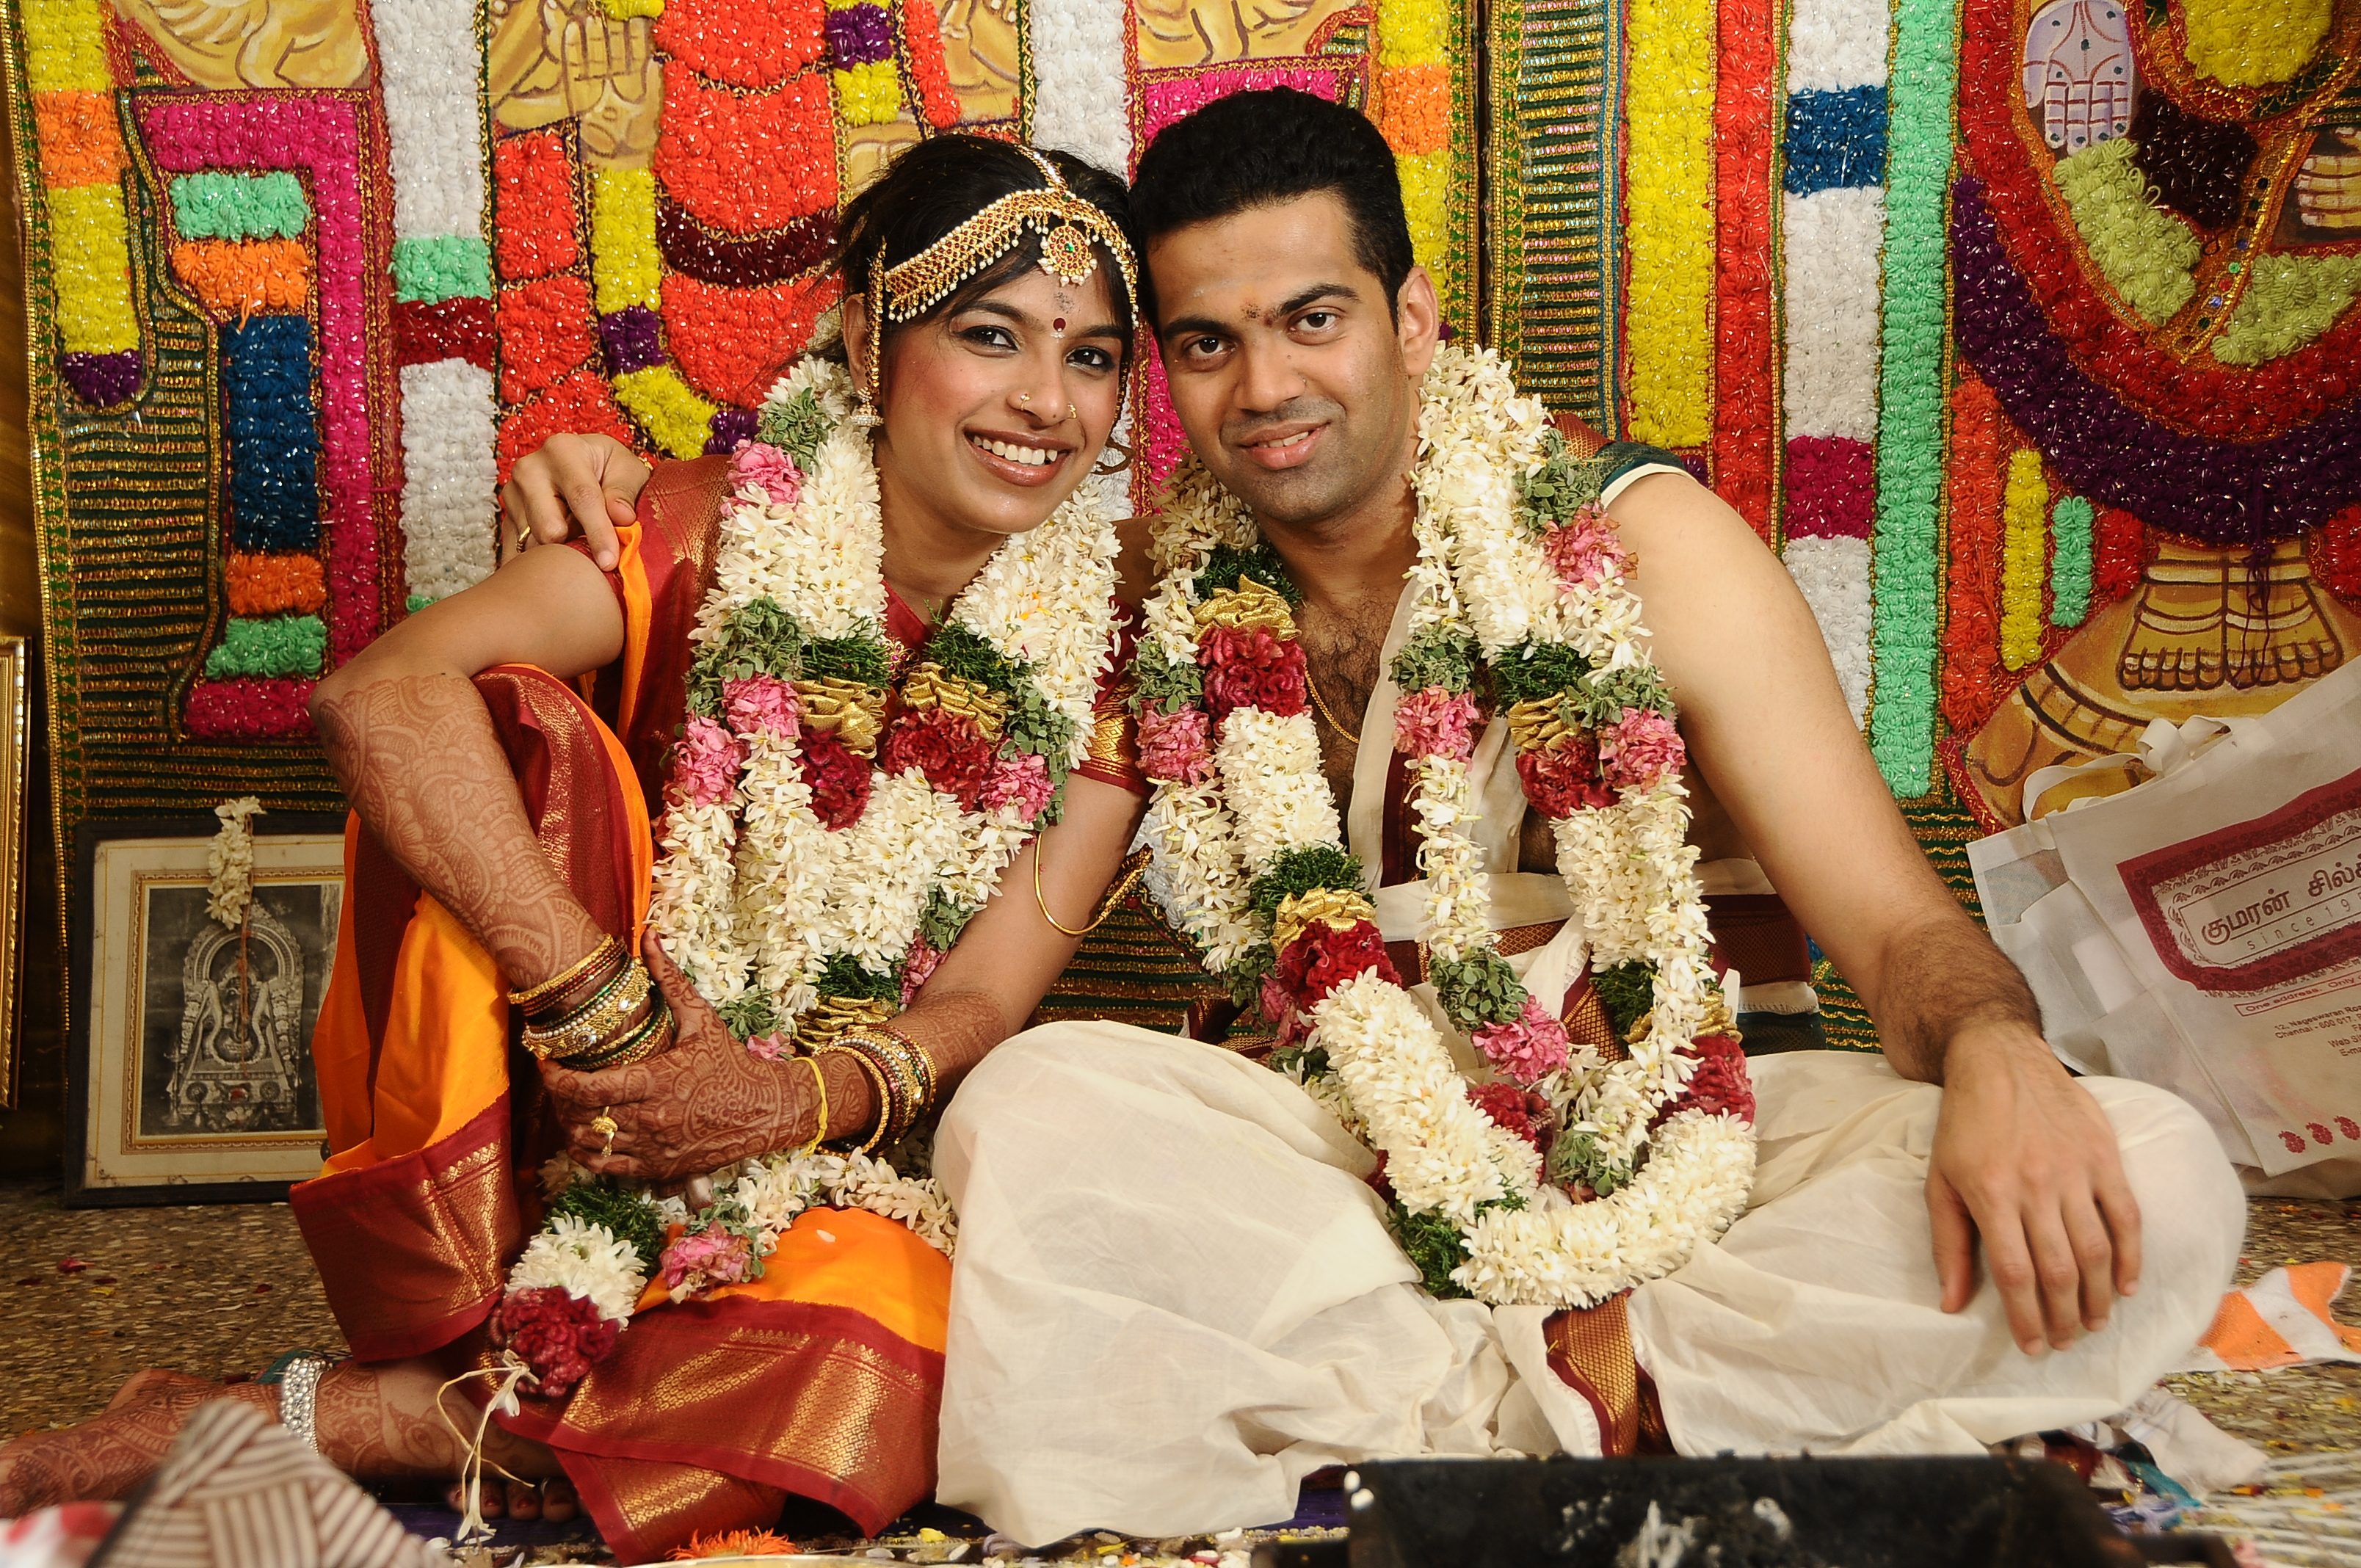 Gomathi Ramakrishnan and Prashanth Vishnumangalam Narayanan at their wedding in Chennai, Tamil Nadu, India.